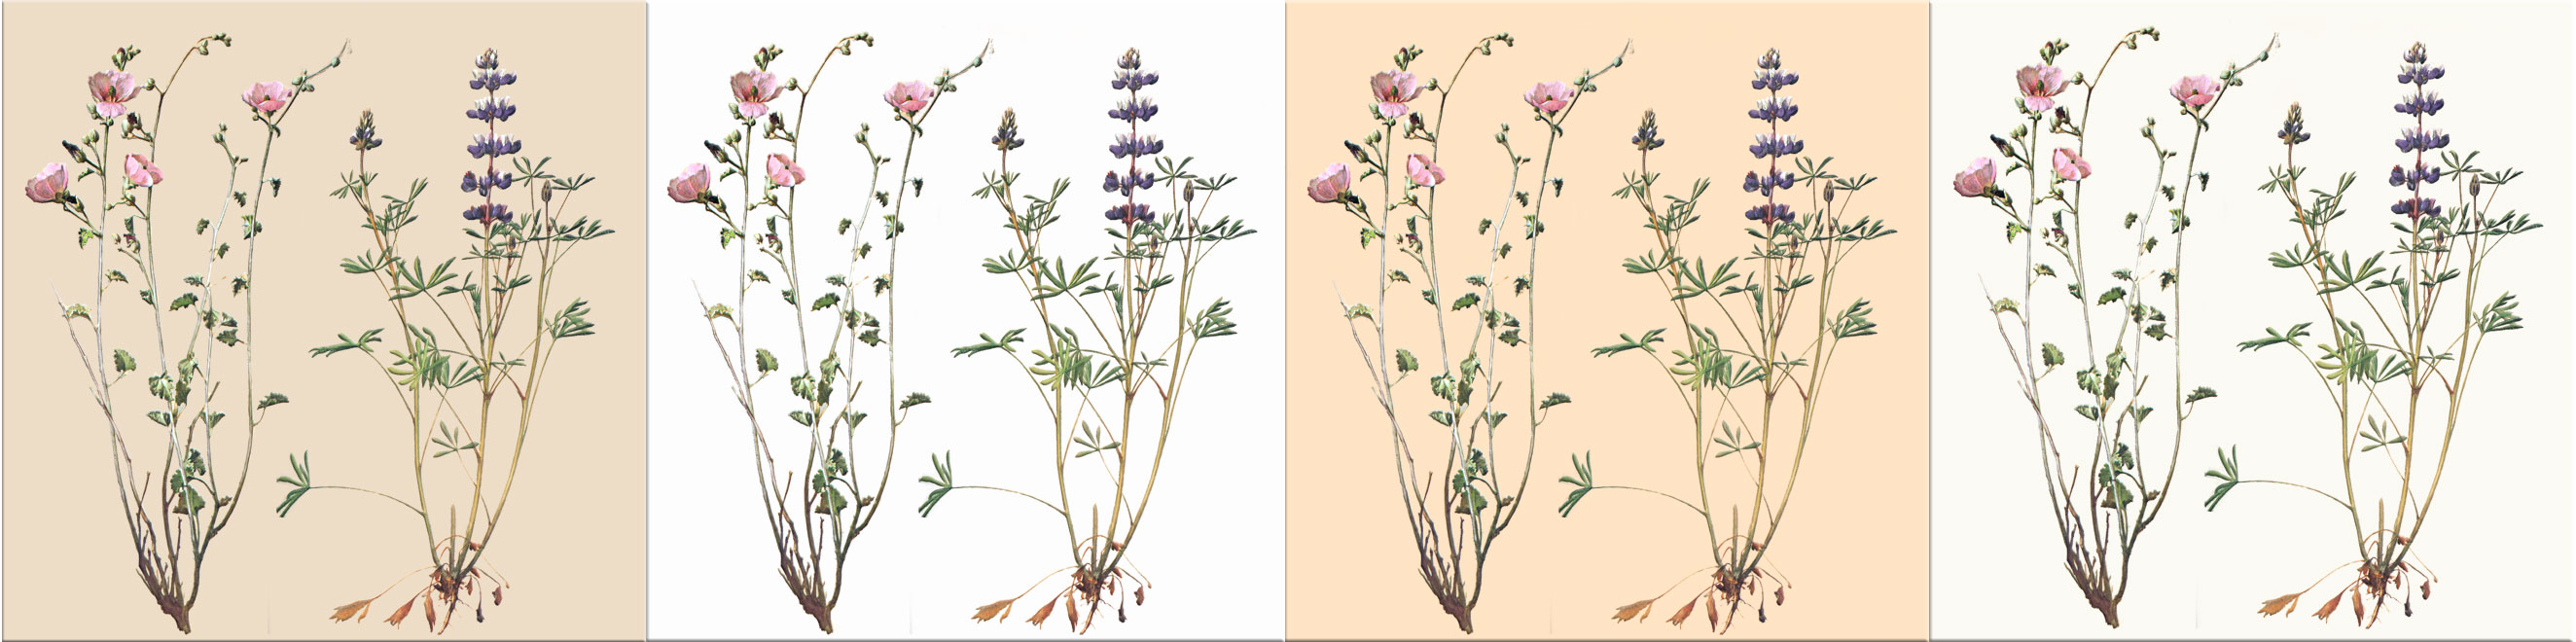 Rose Mallow and Bicolor Lupine on bisque, Navajo, parchment, and wheat backgrounds.  WilliamMorrisTile.com